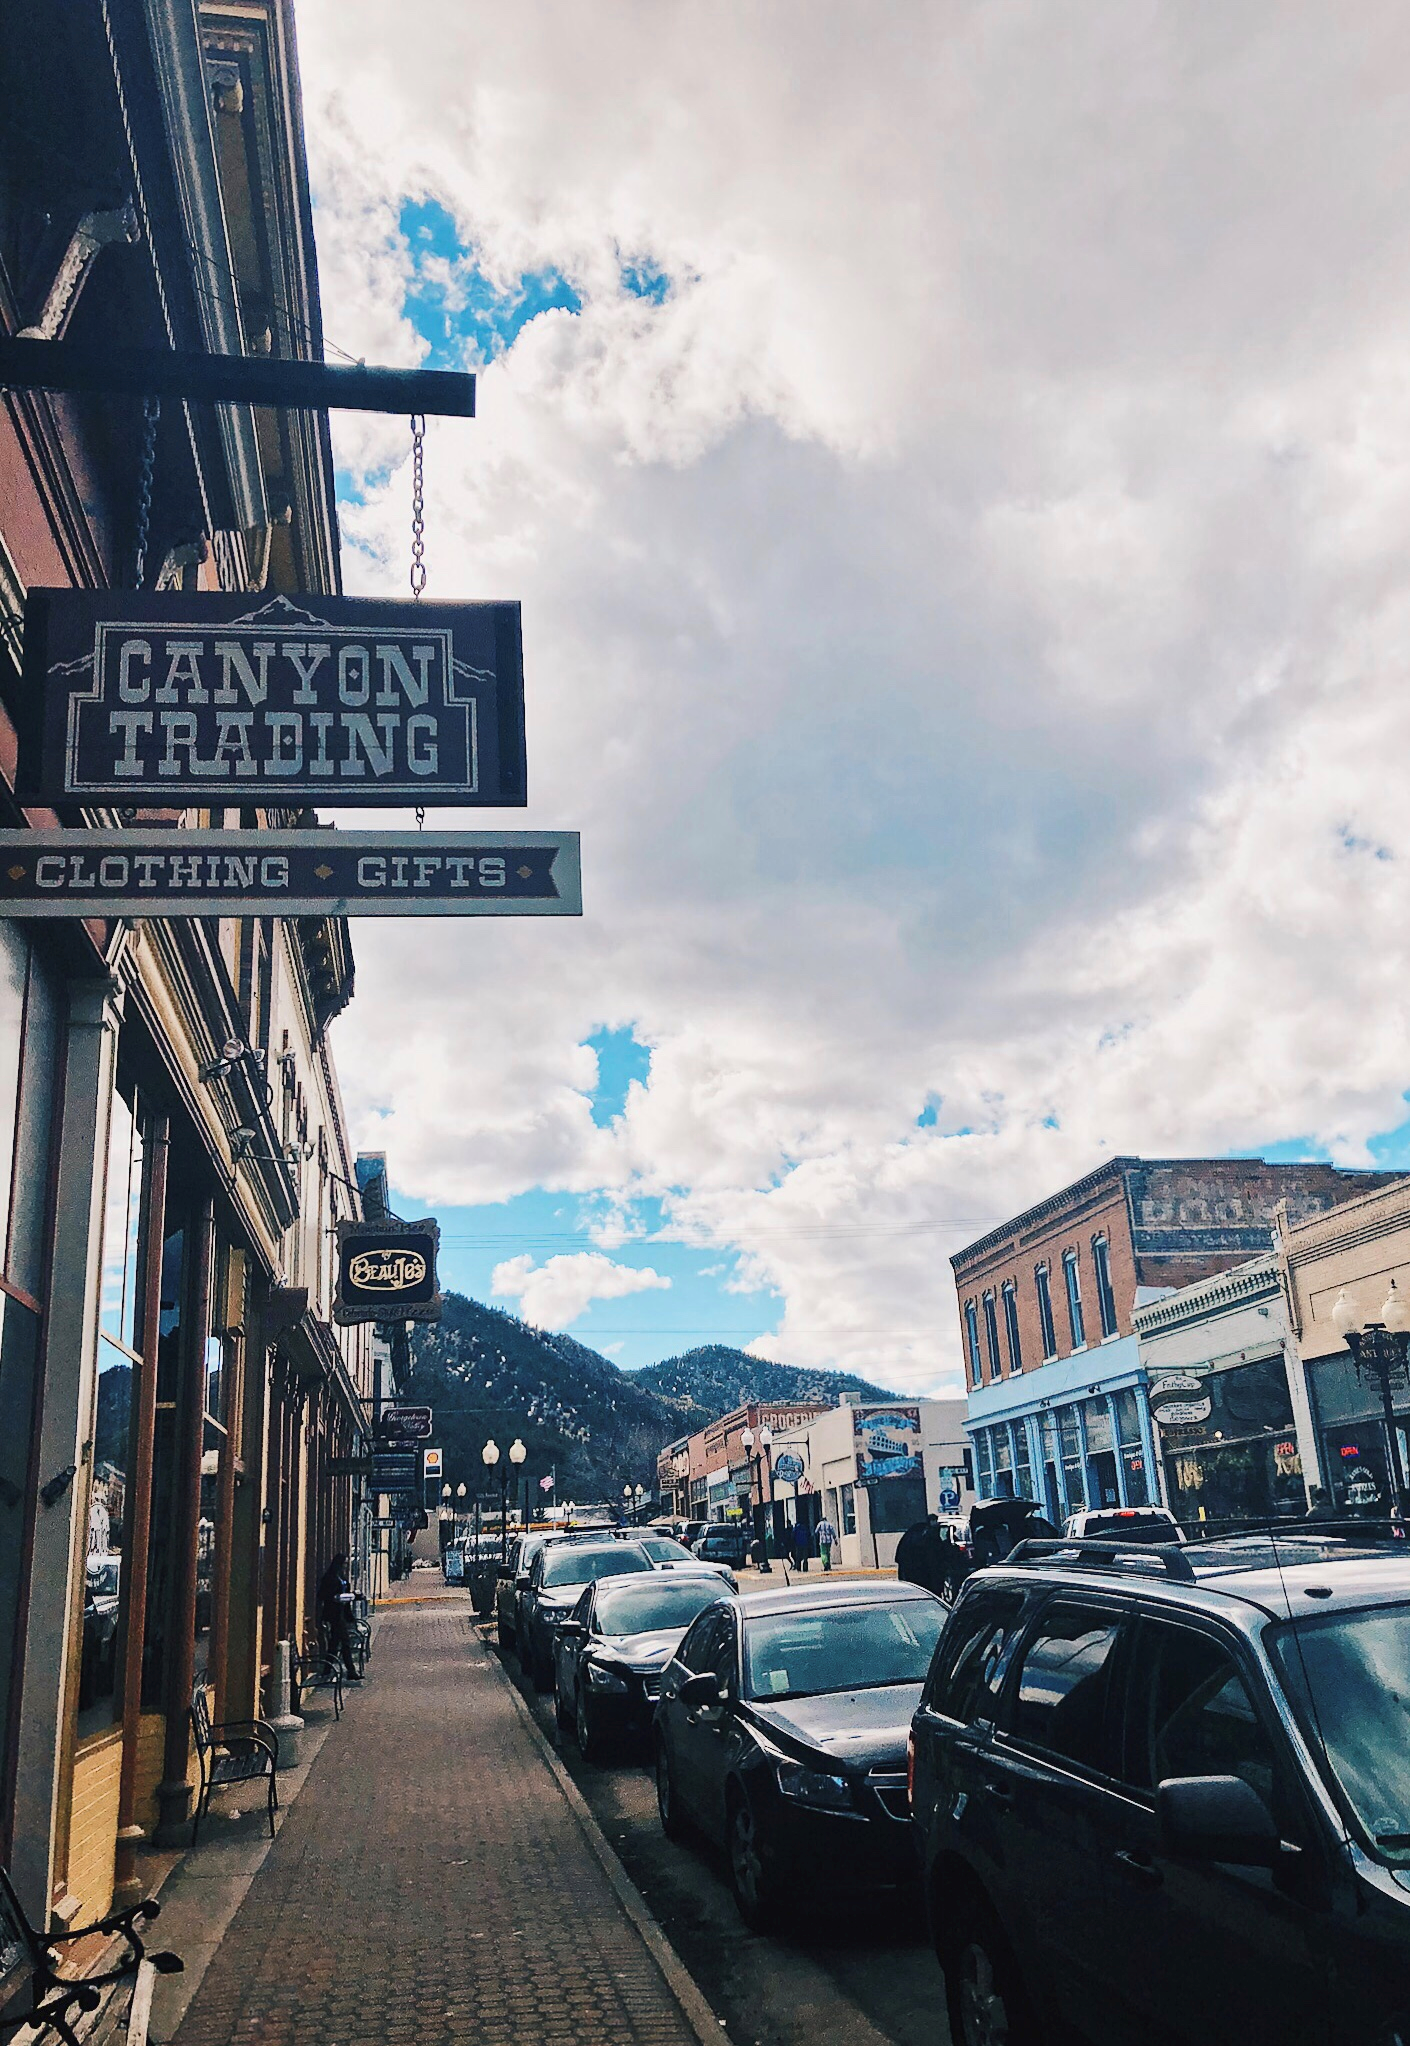 Kyler Wesp travels to Denver Colorado and explores the attractions of the Rocky mountains and city life while on a family vacation during spring break